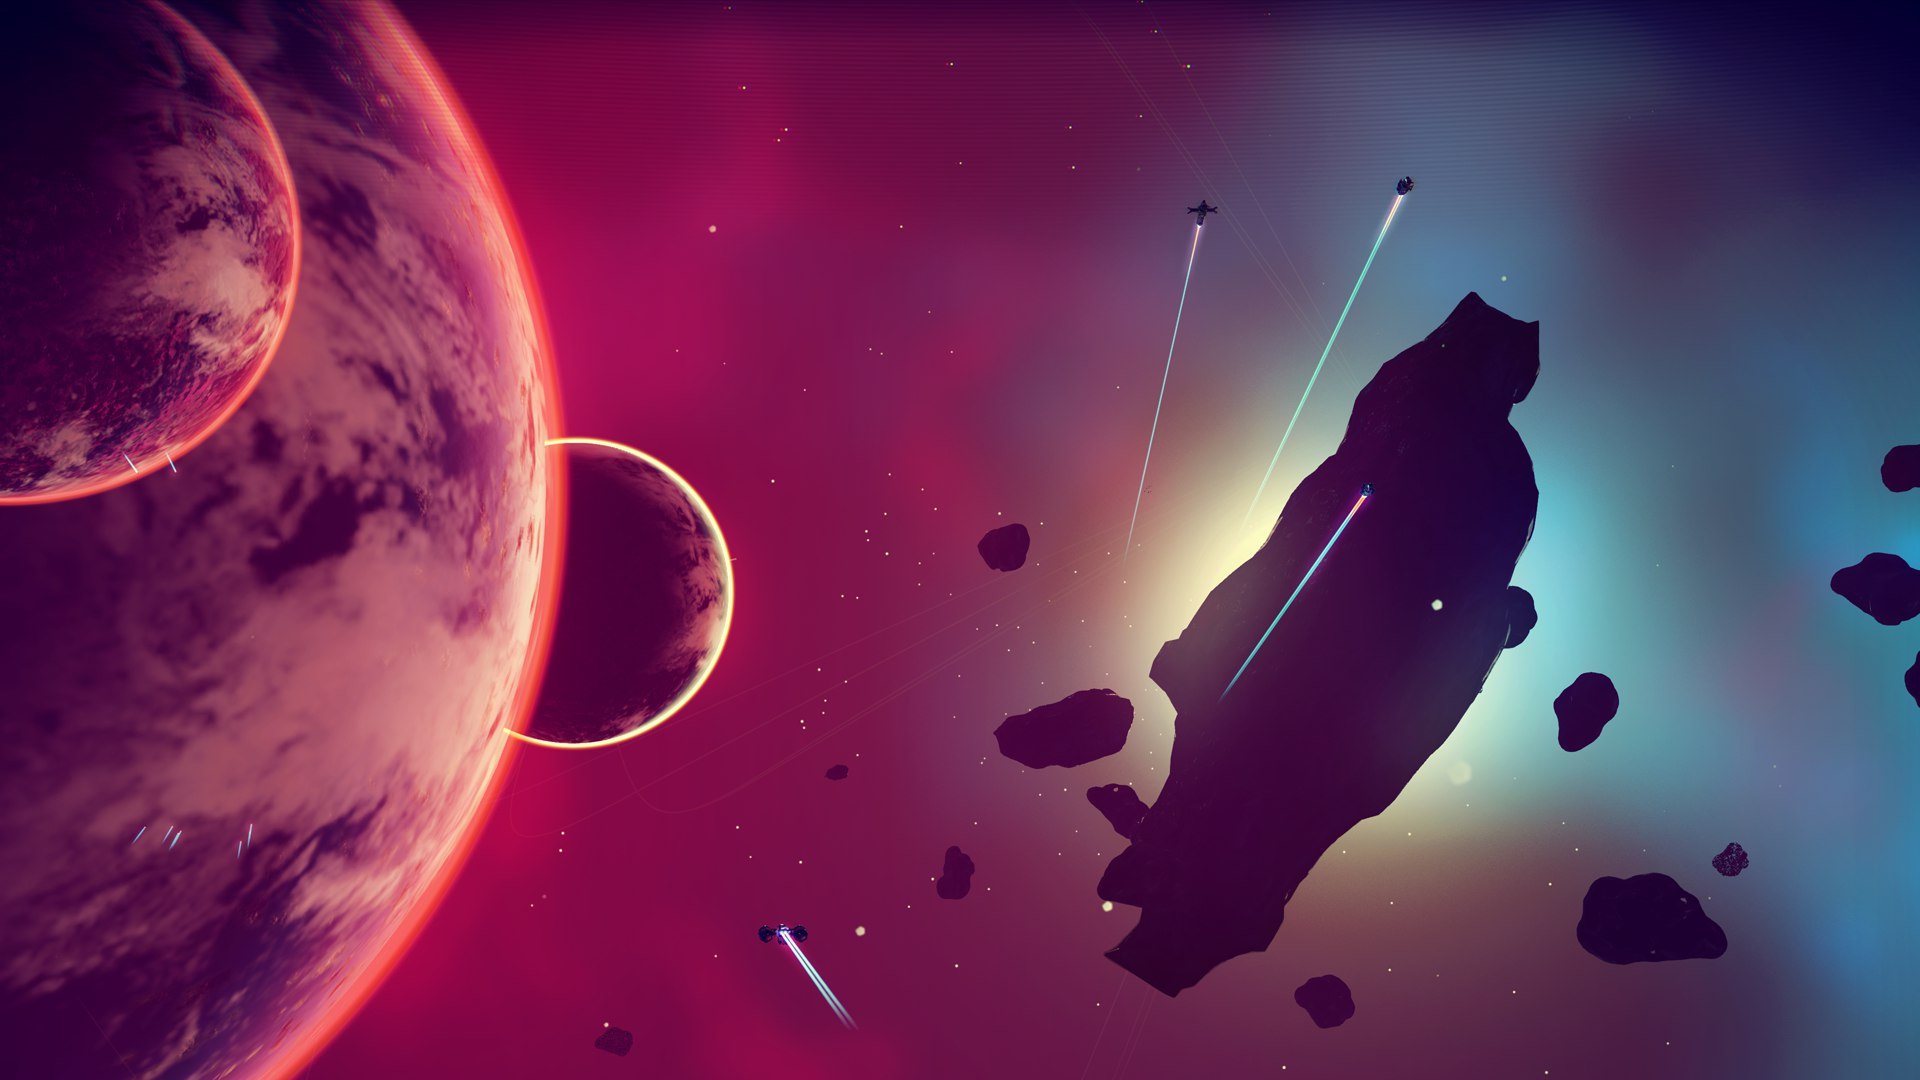 No Man's Sky Screen #3